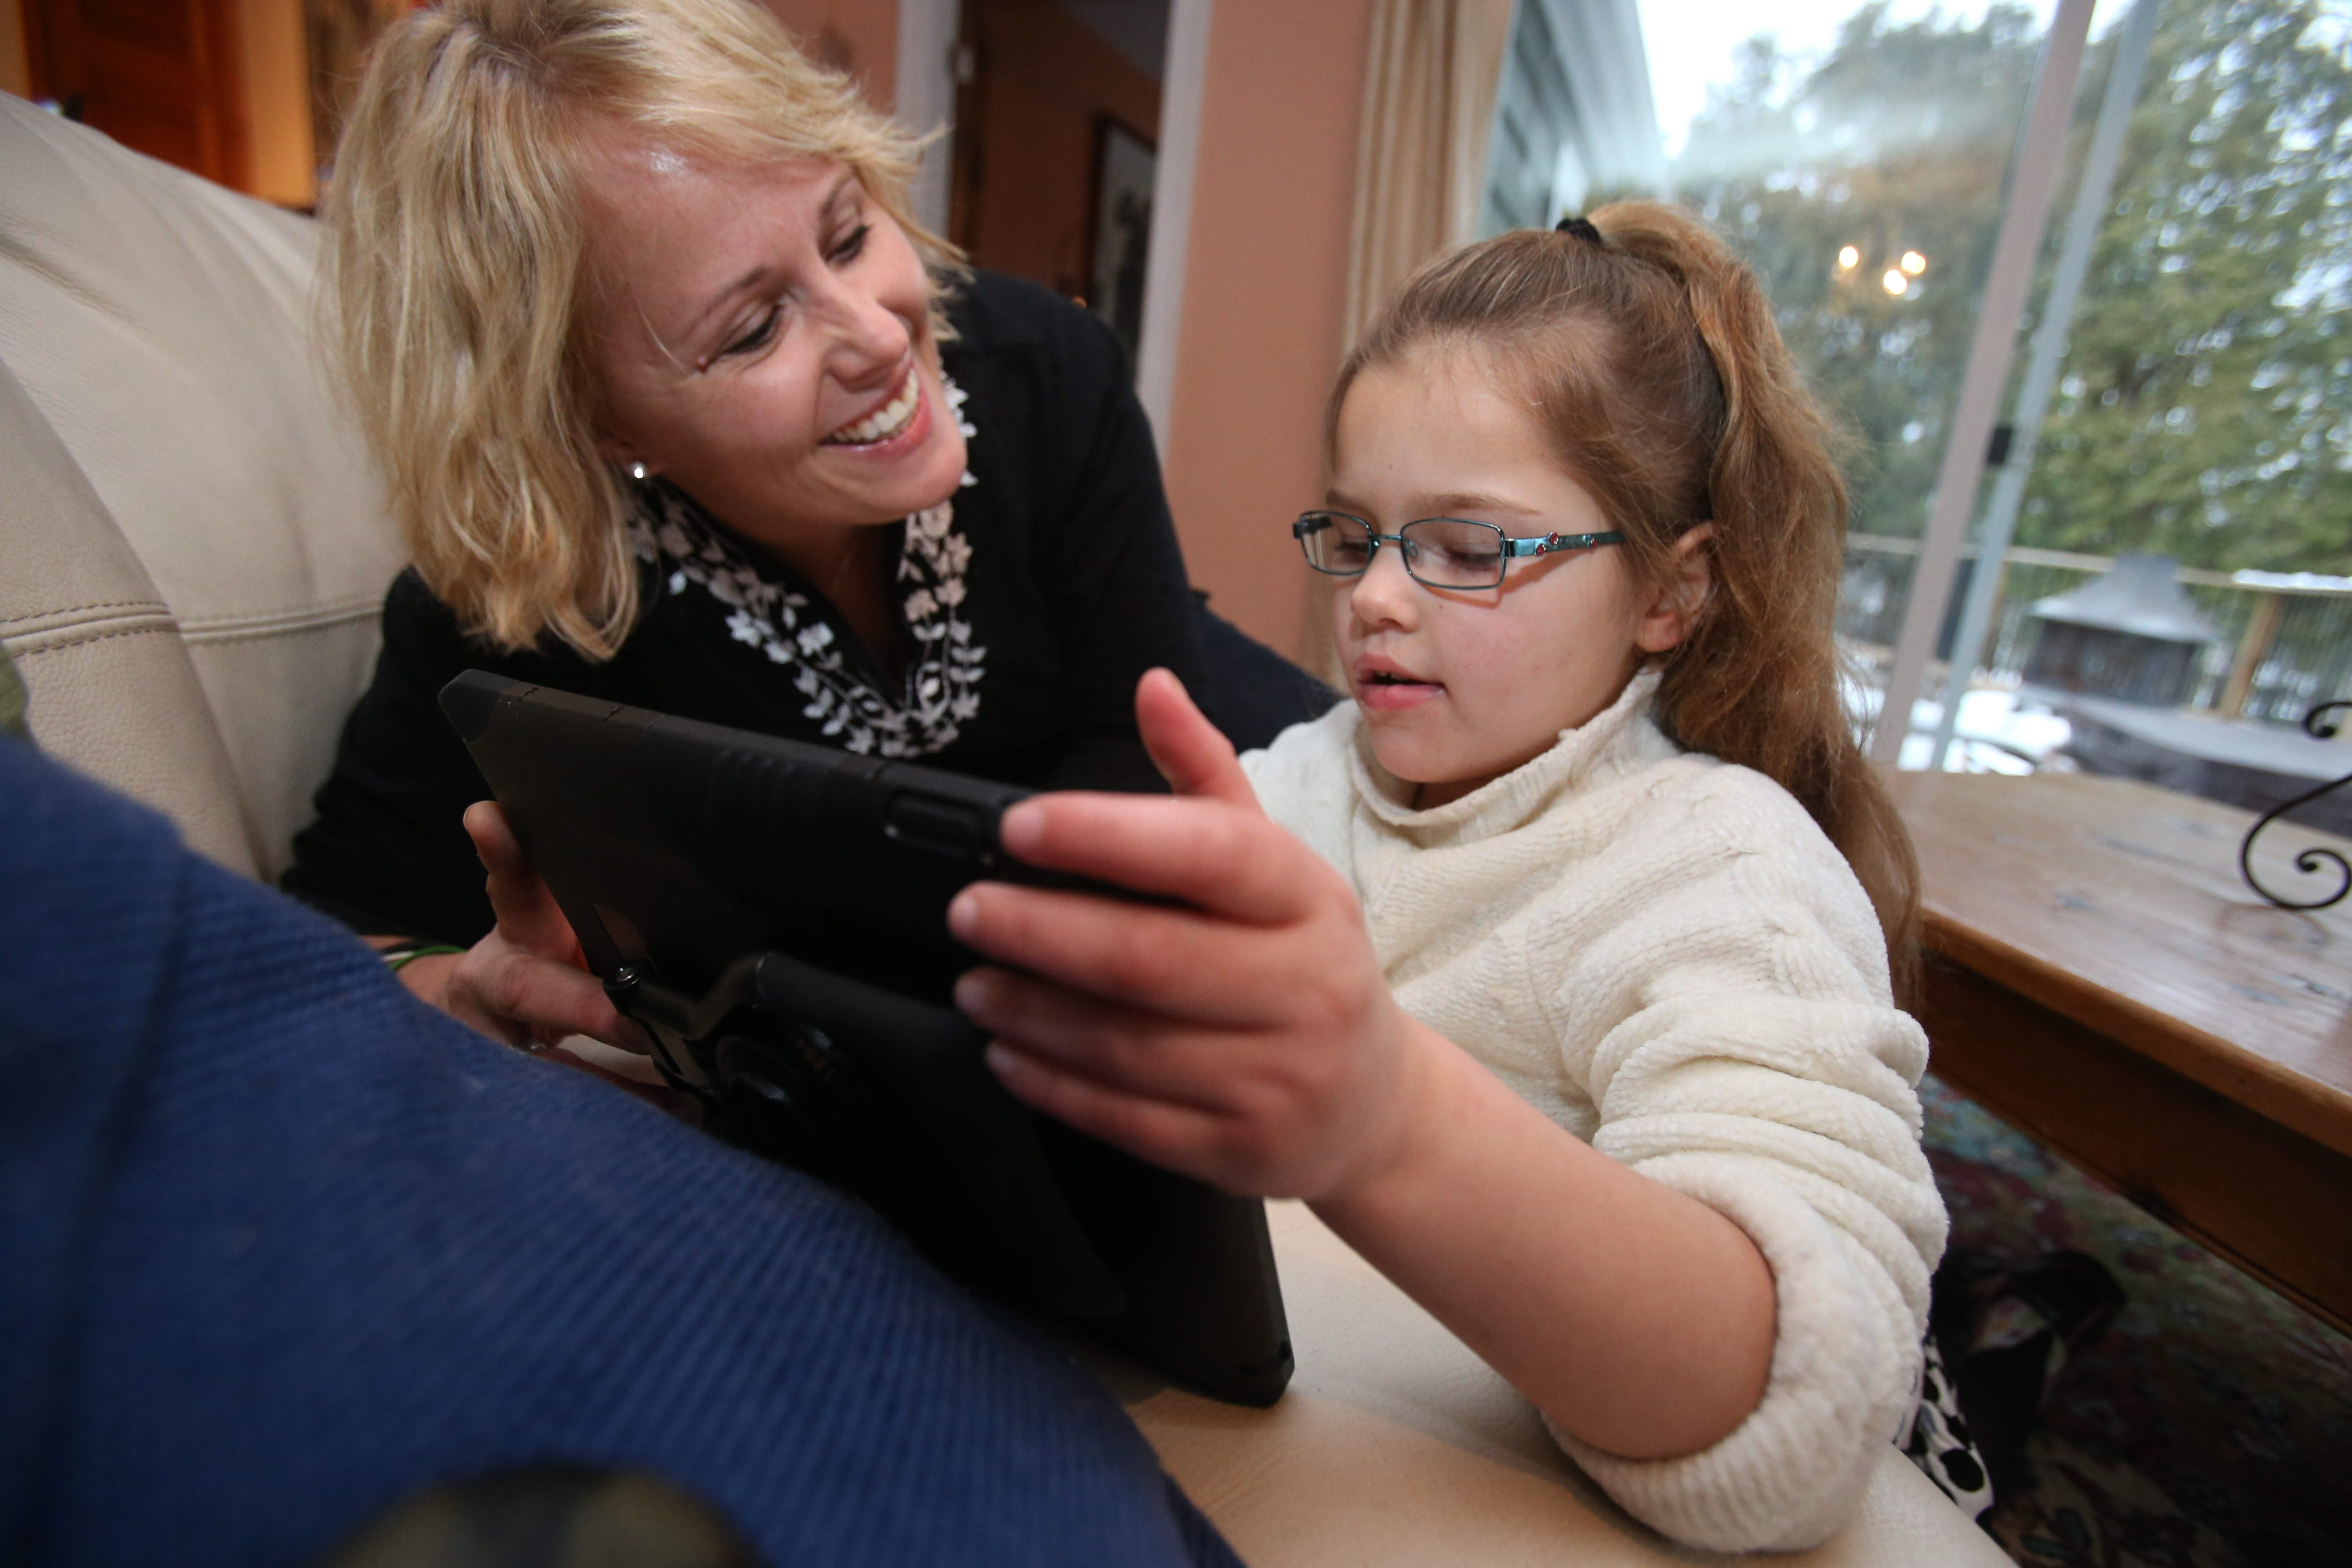 Wendy Conte, of Orchard Park, hopes that a form of medical marijuana will help control the seizures her 8-year-old daughter, Anna, is dealing with. (Buffalo News file photo)